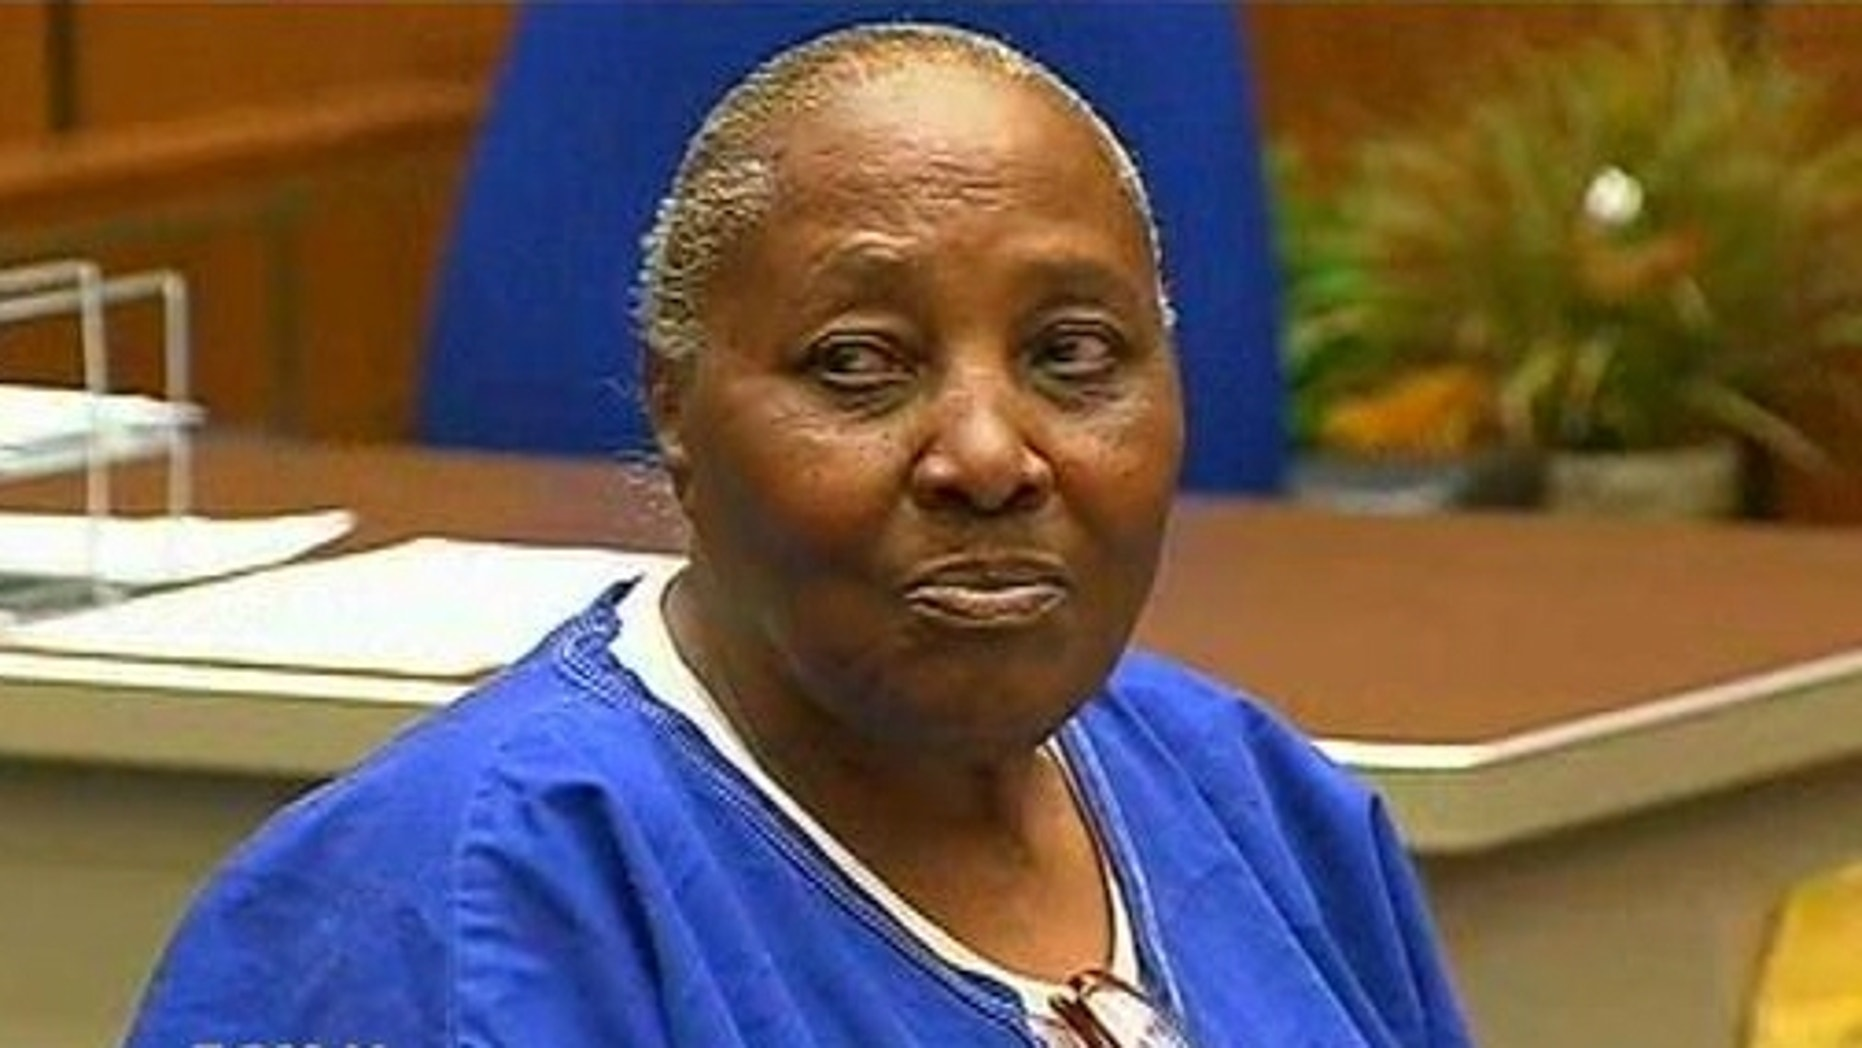 March 24, 2014: Mary Virginia Jones at a hearing in Los Angeles Superior Court (MyFoxLA.com)